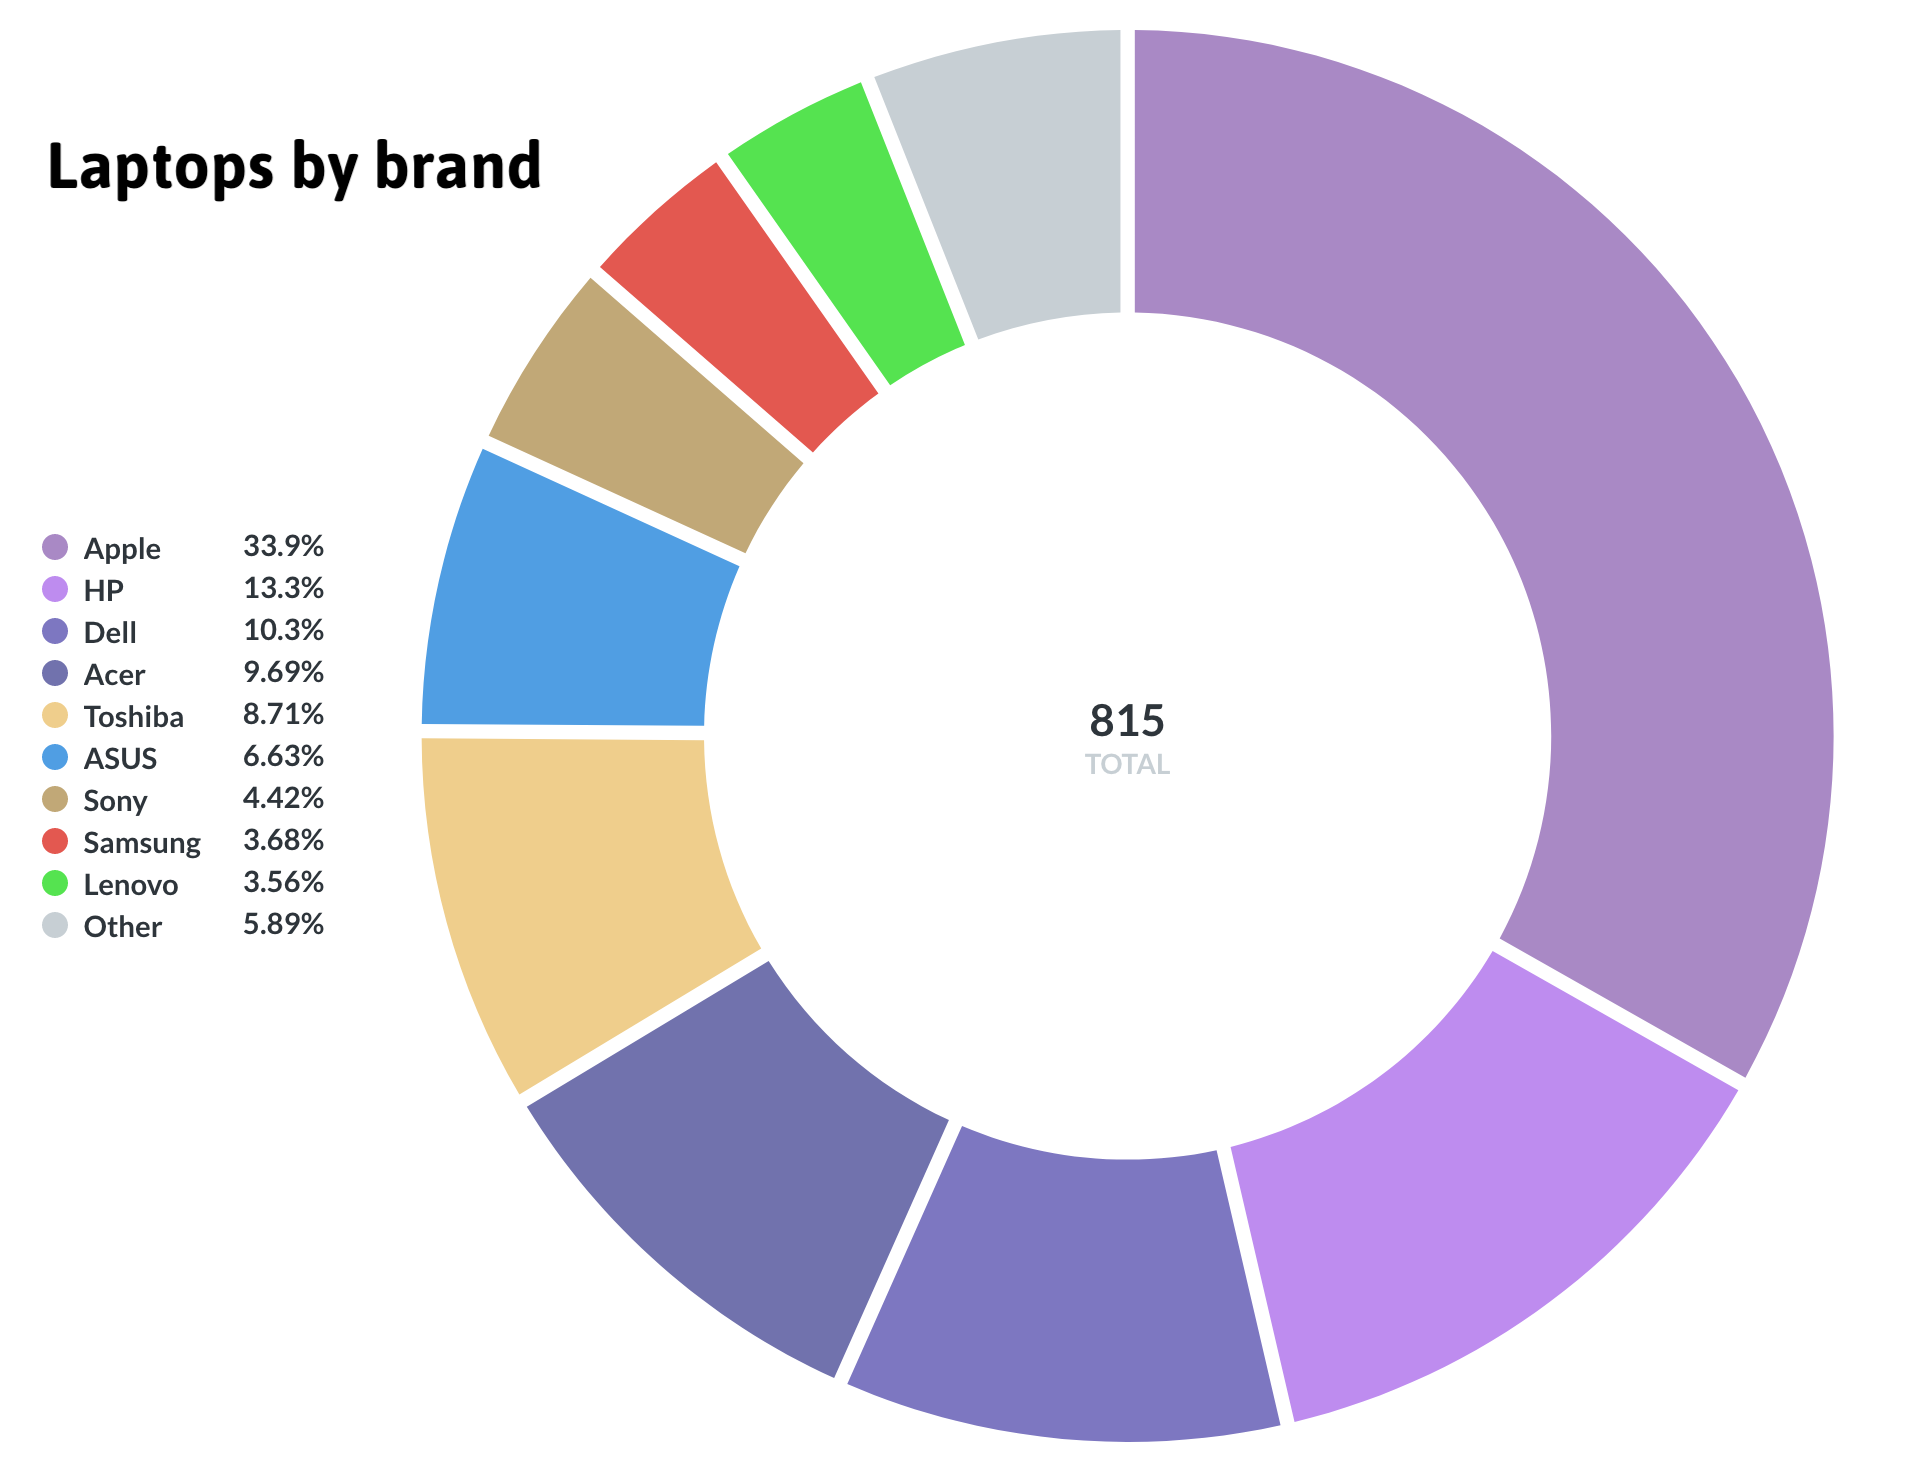 pie chart of laptops by brand